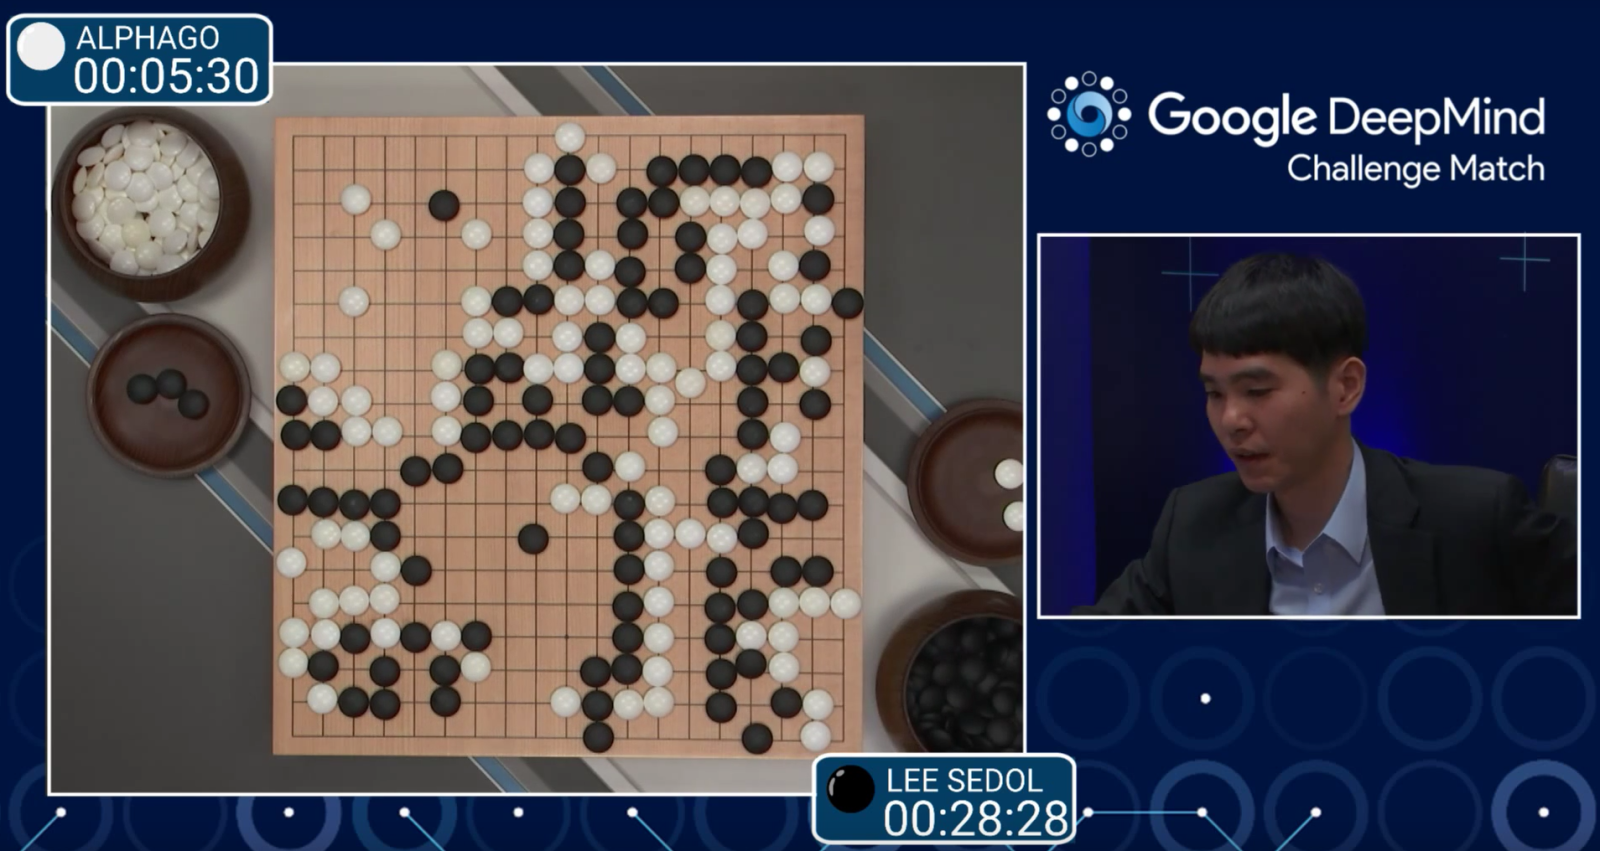 Google's AlphaGo AI Beat a World Champion at Go, and That's a Huge Deal